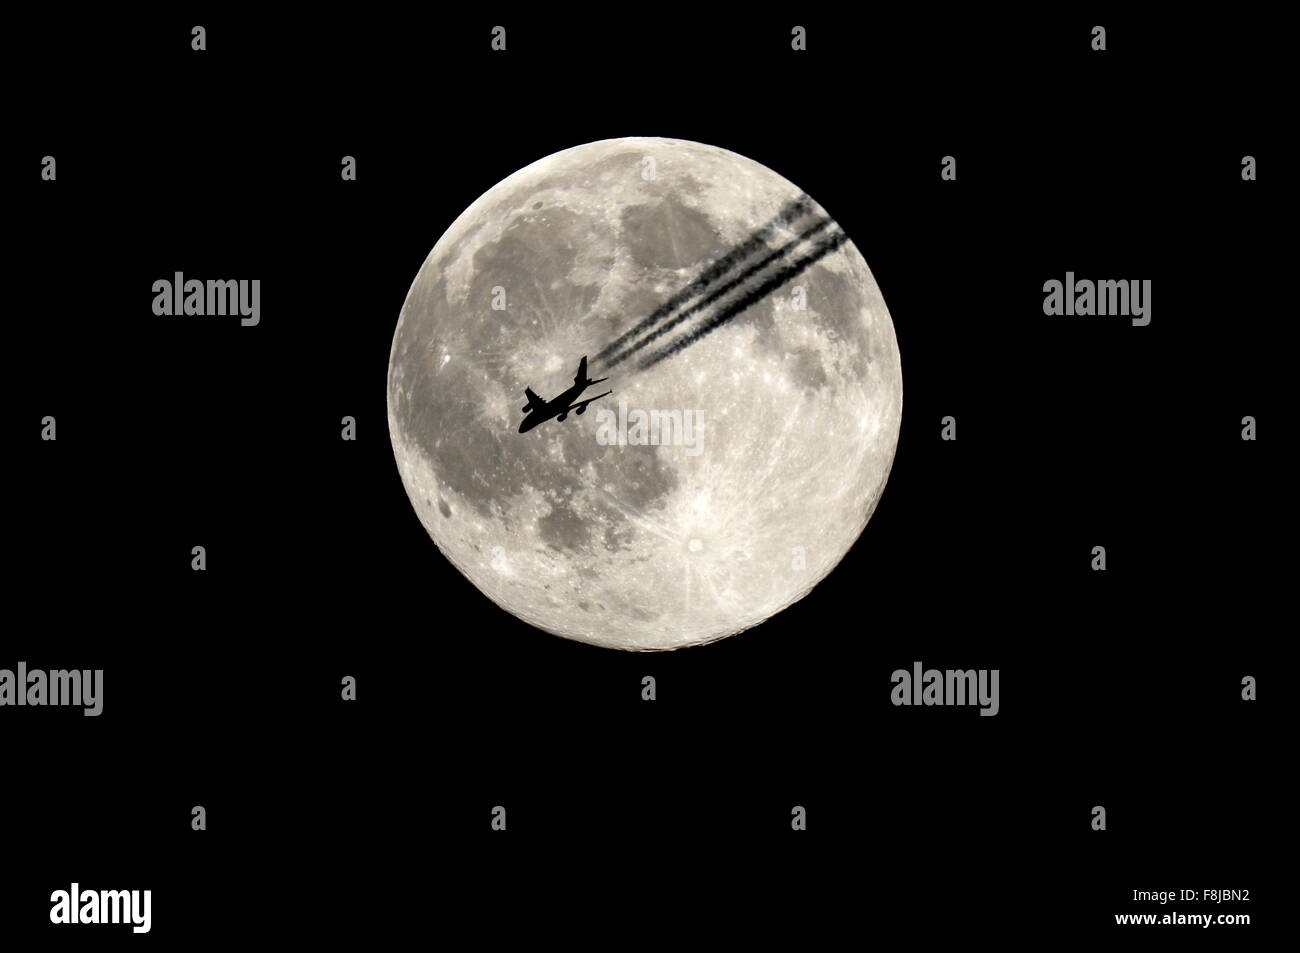 astronomy, astronomer, stargazer, astrophoto, moon, airplane, full moon, space, sky - Stock Image